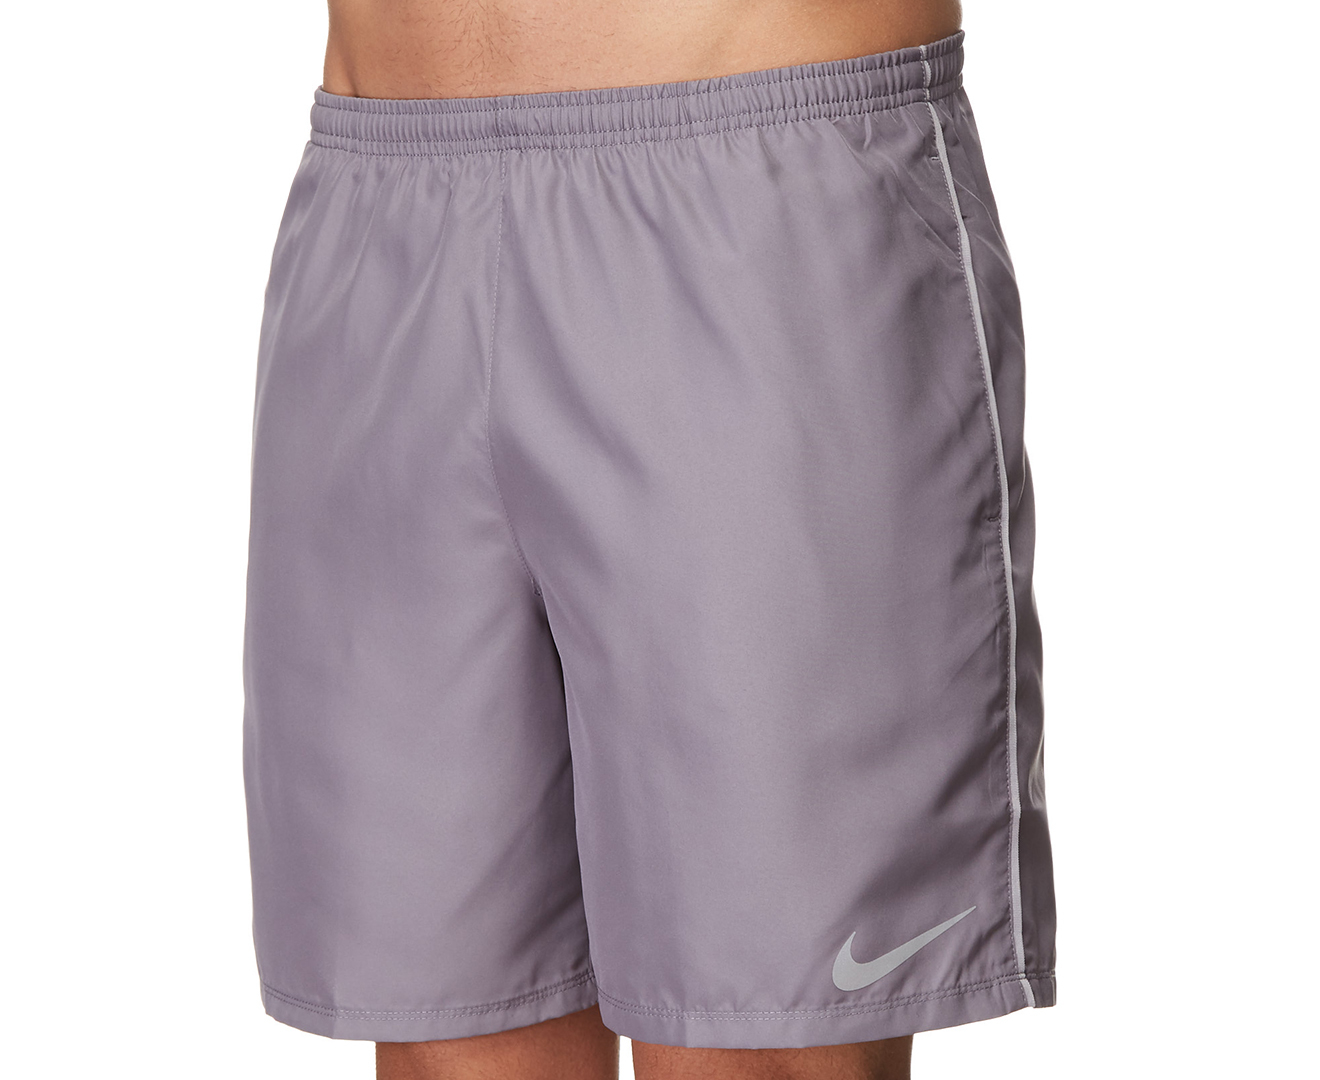 8d2201a1d4391 Details about Nike Men's Flex 7-Inch Running Short - Grey